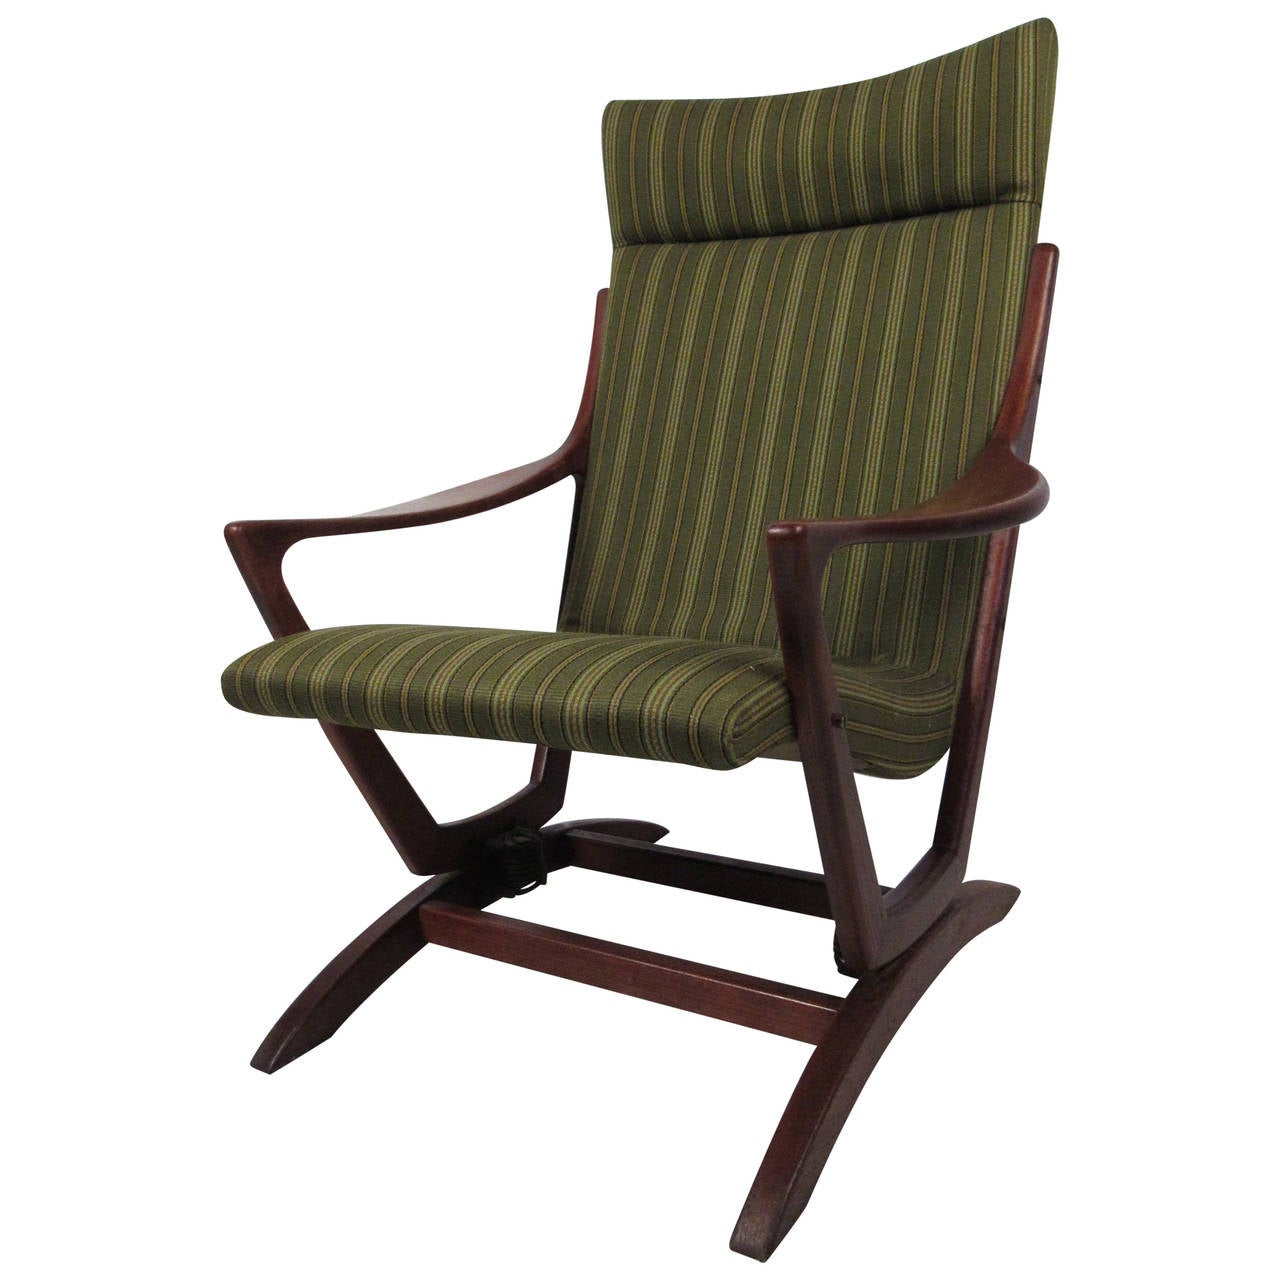 mid century modern walnut frame rocking chair for sale at 1stdibs. Black Bedroom Furniture Sets. Home Design Ideas